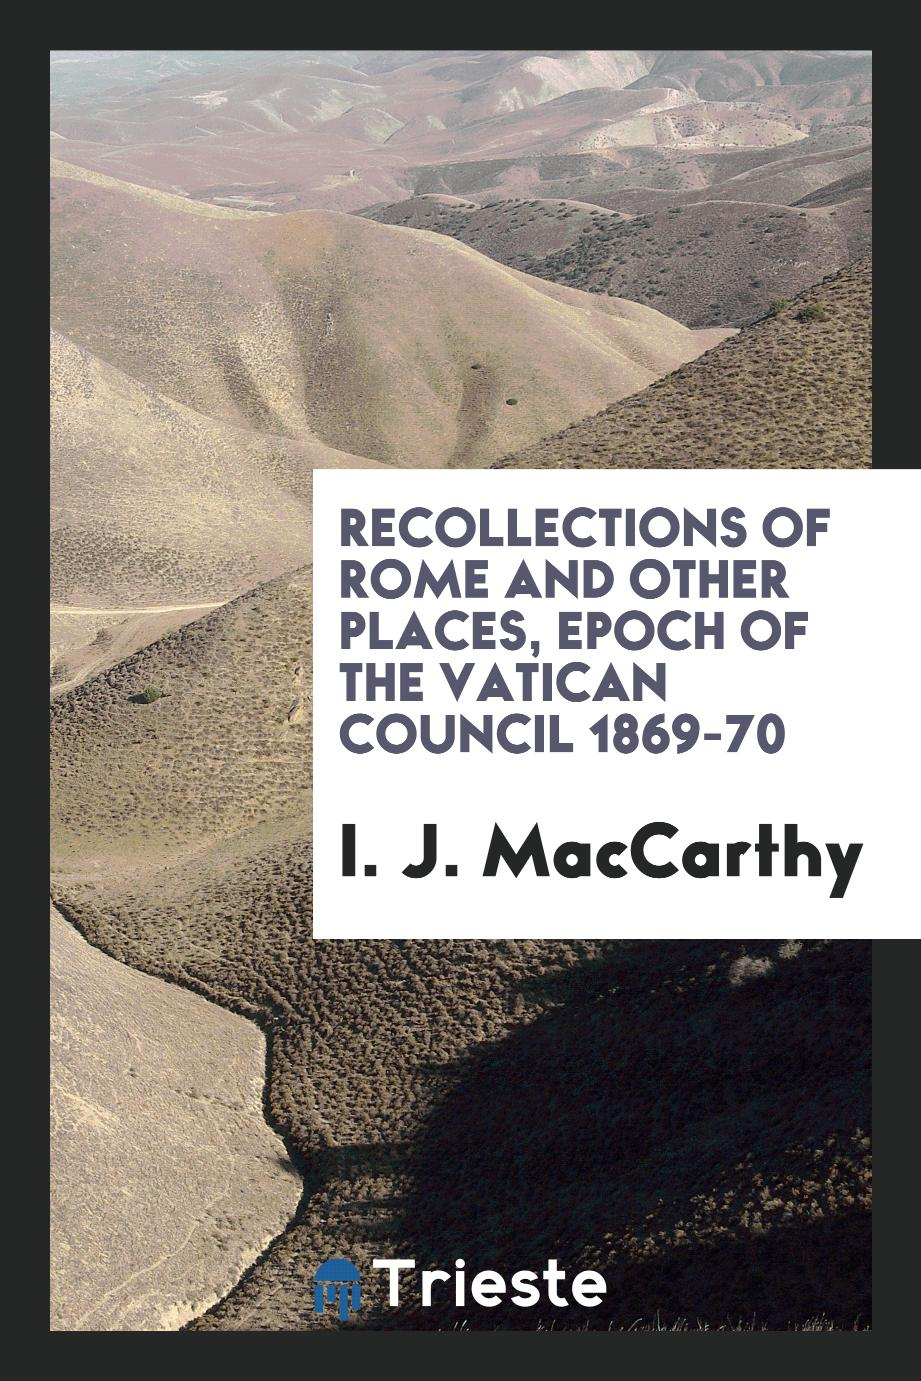 Recollections of Rome and other places, epoch of the Vatican Council 1869-70